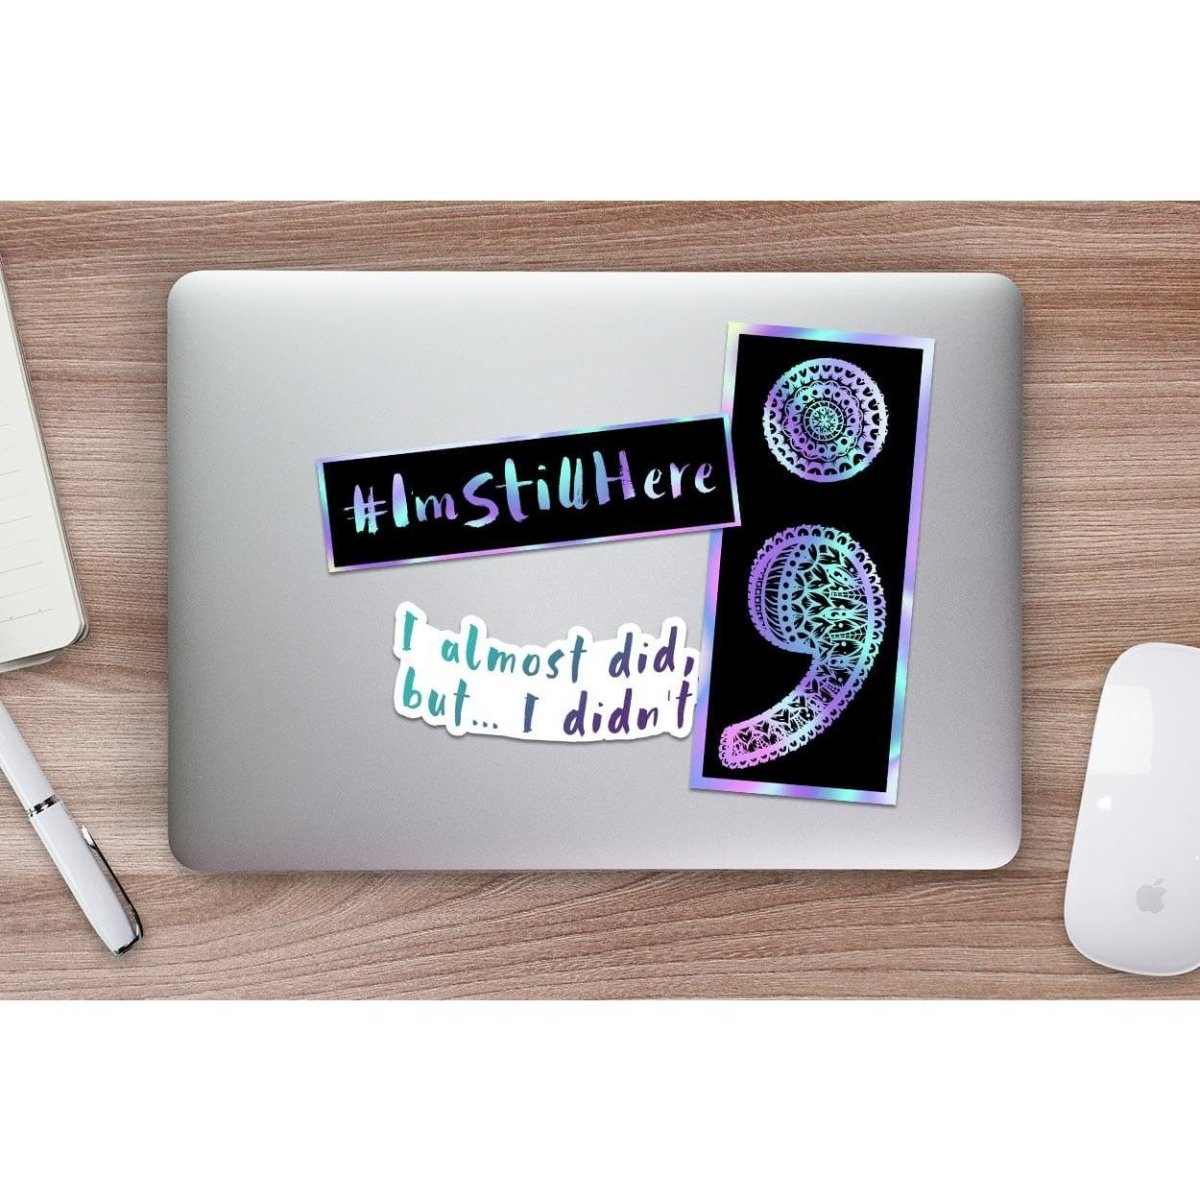 I'm Still Here (#1) - Hologram Sticker - Dan Pearce Sticker Shop